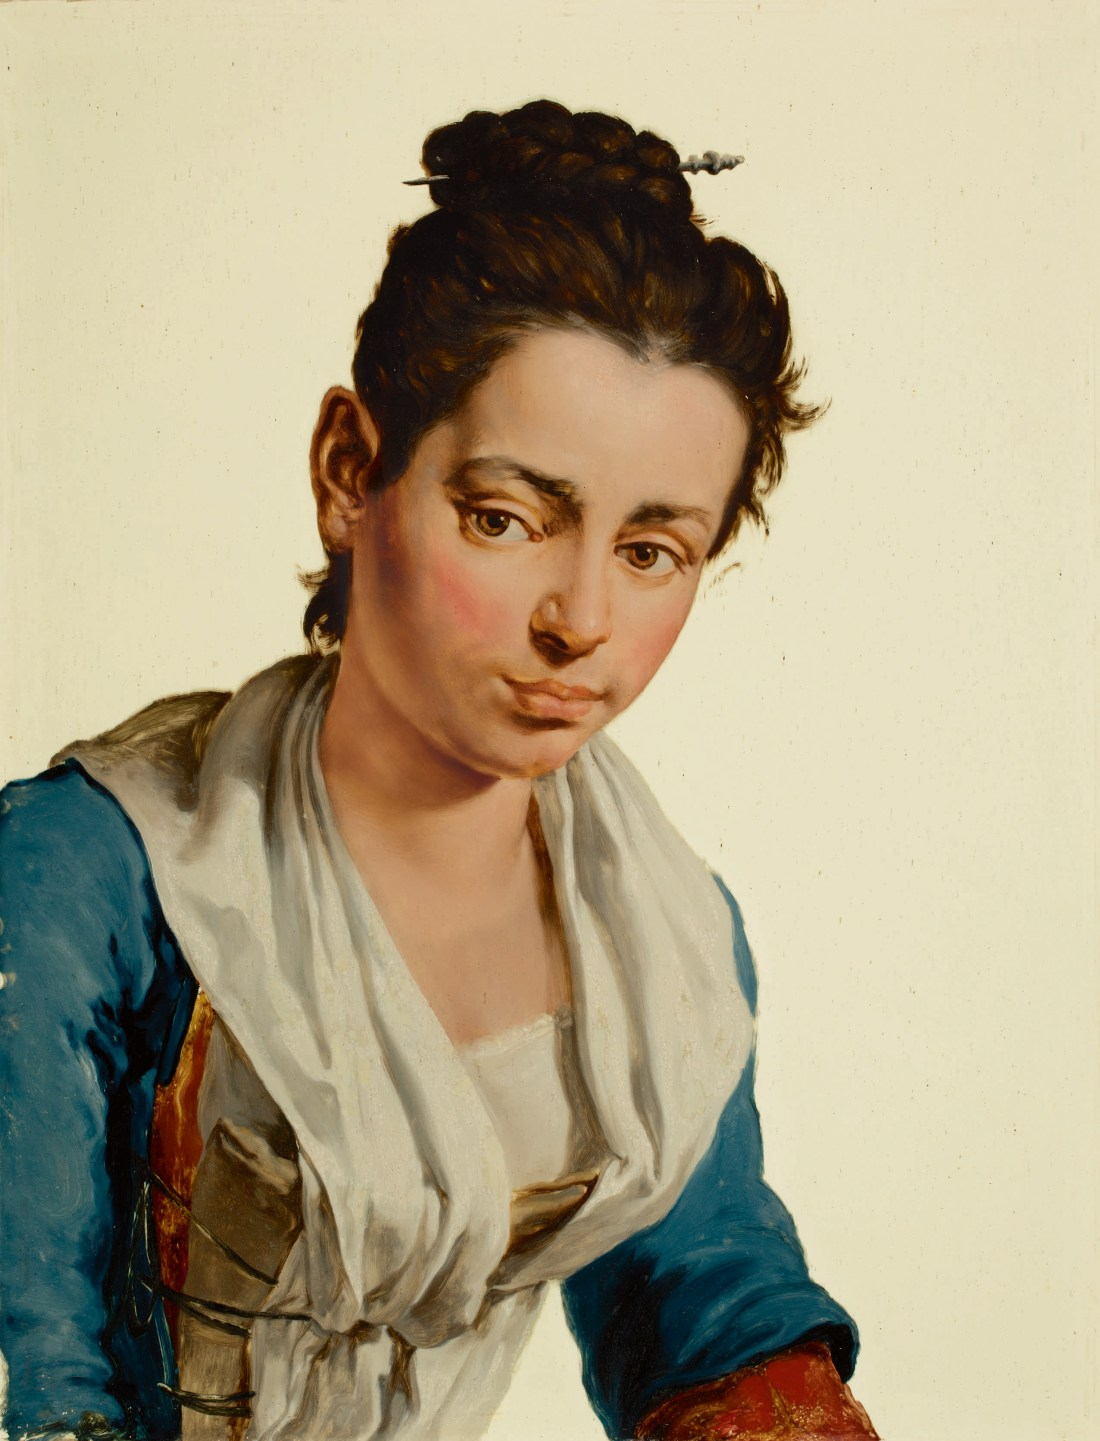 Portrait of a Young Countrywoman, Half Length, an oil on glass painted in the late 1720s or early 1730s by Giacomo Ceruti, who also went by the name Pitocchetto.